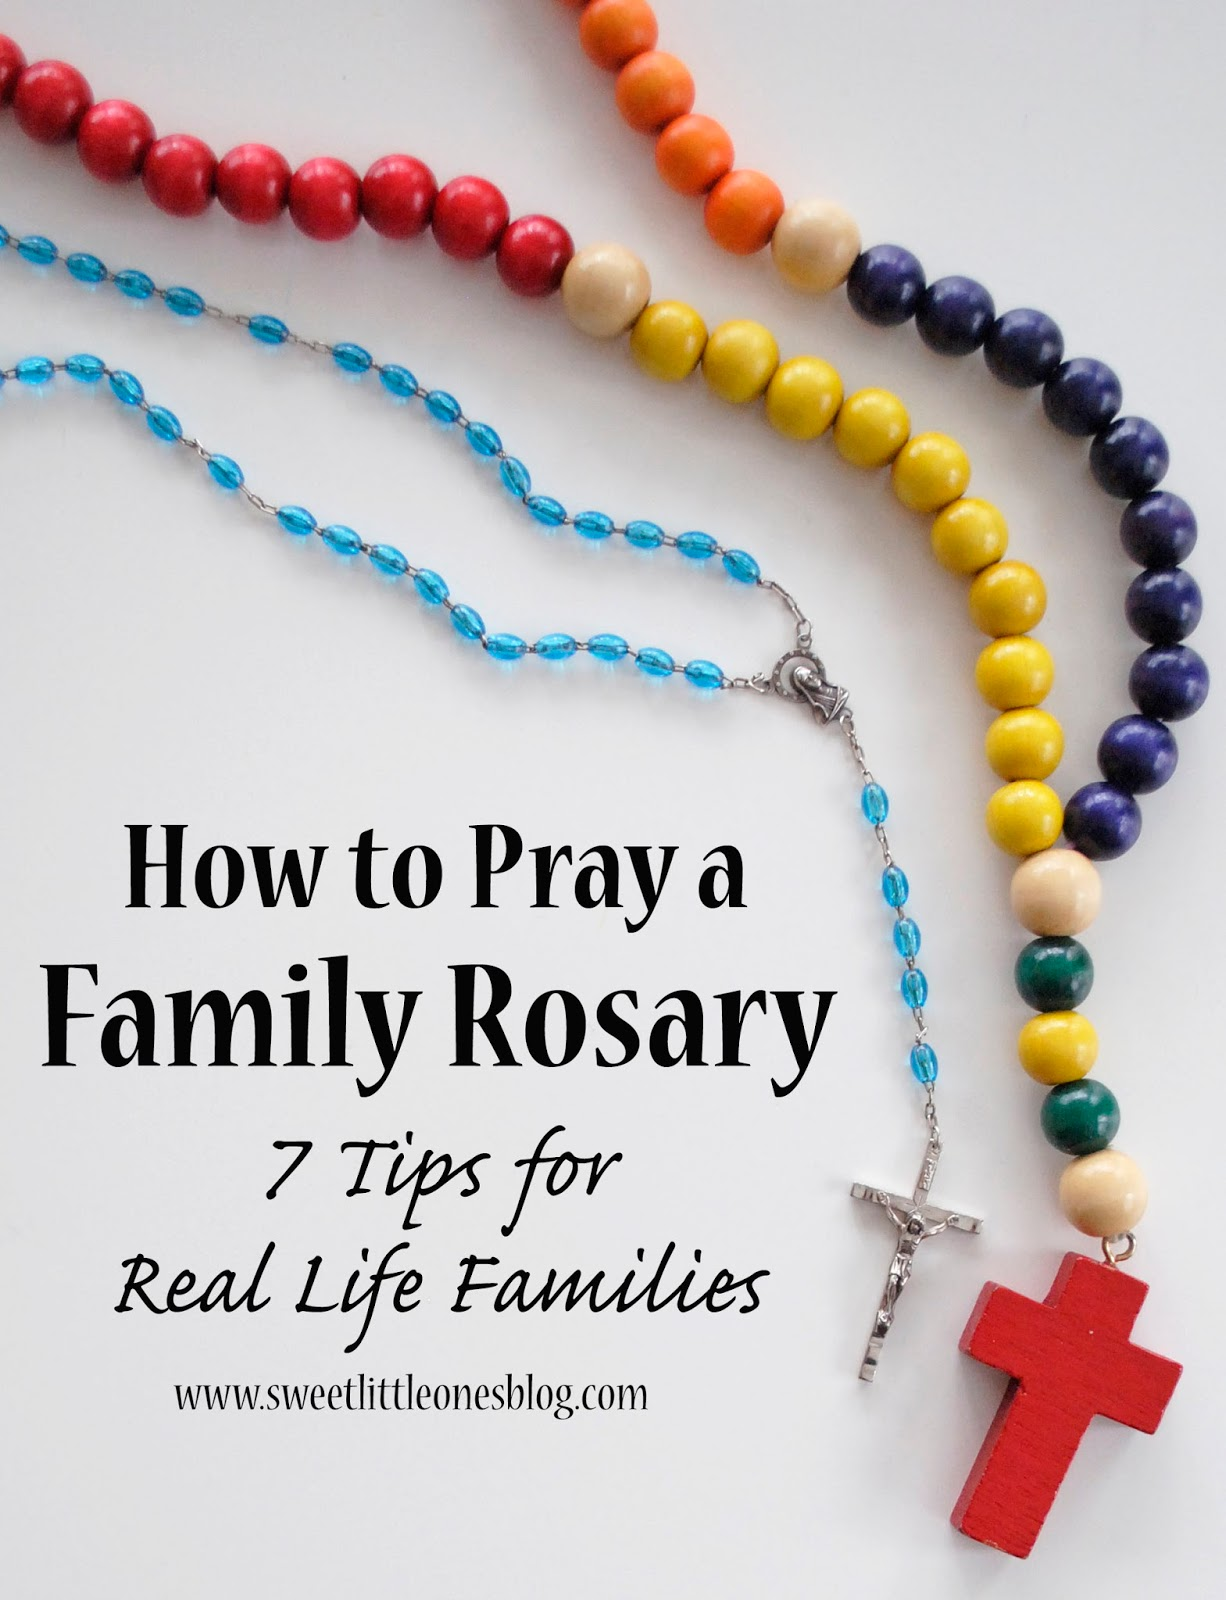 Sweet Little Ones: How to Pray a Family Rosary: 7 Tips for ...